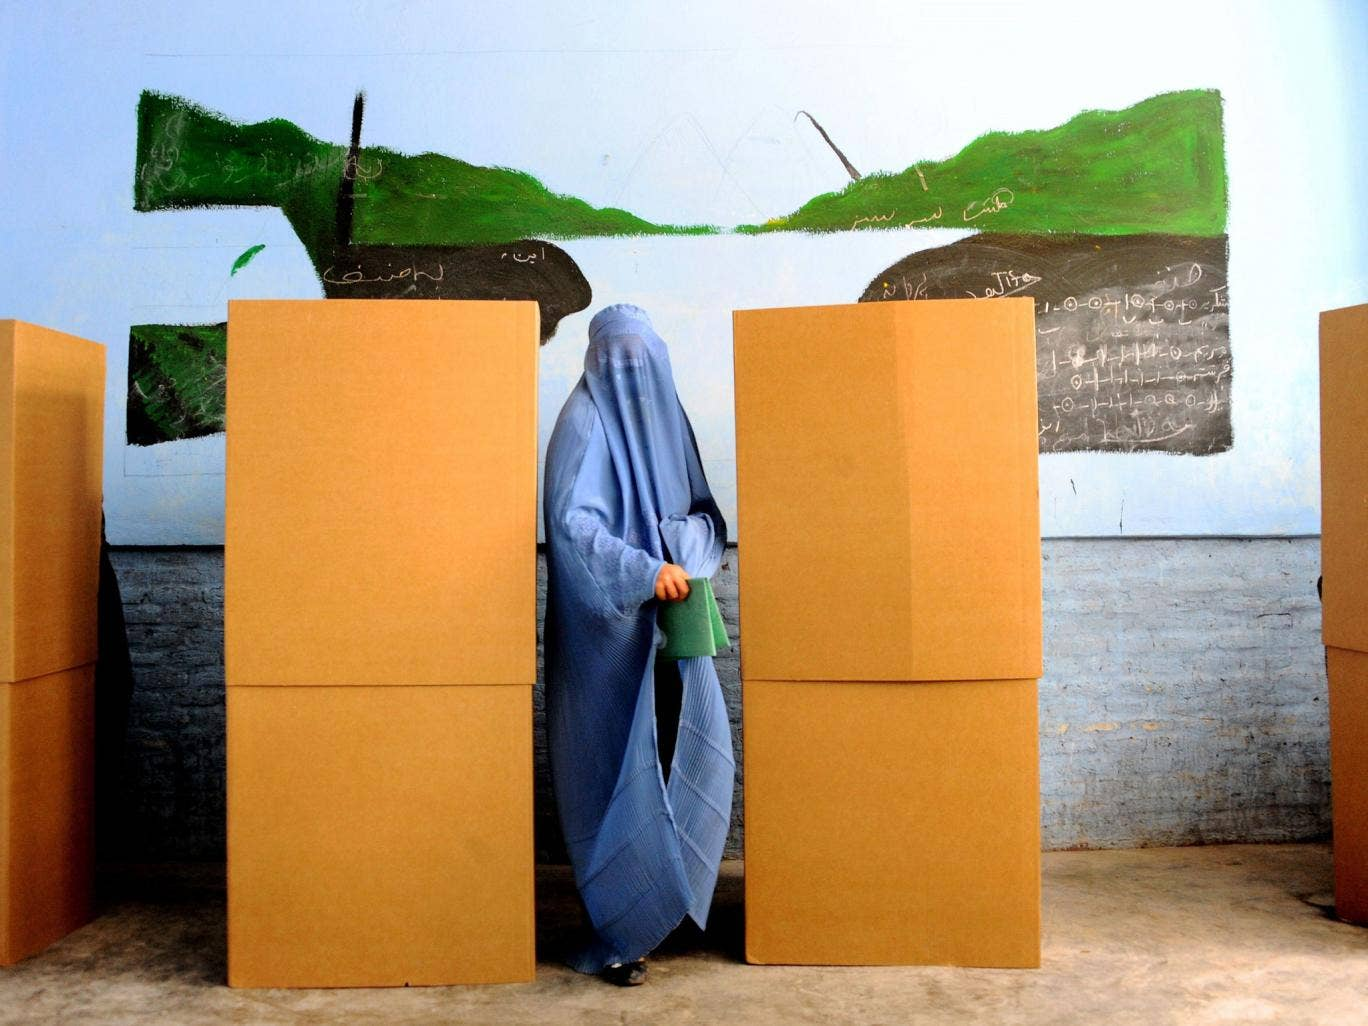 An Afghan woman shows her inked finger after voting at a polling station in the northwestern city of Herat